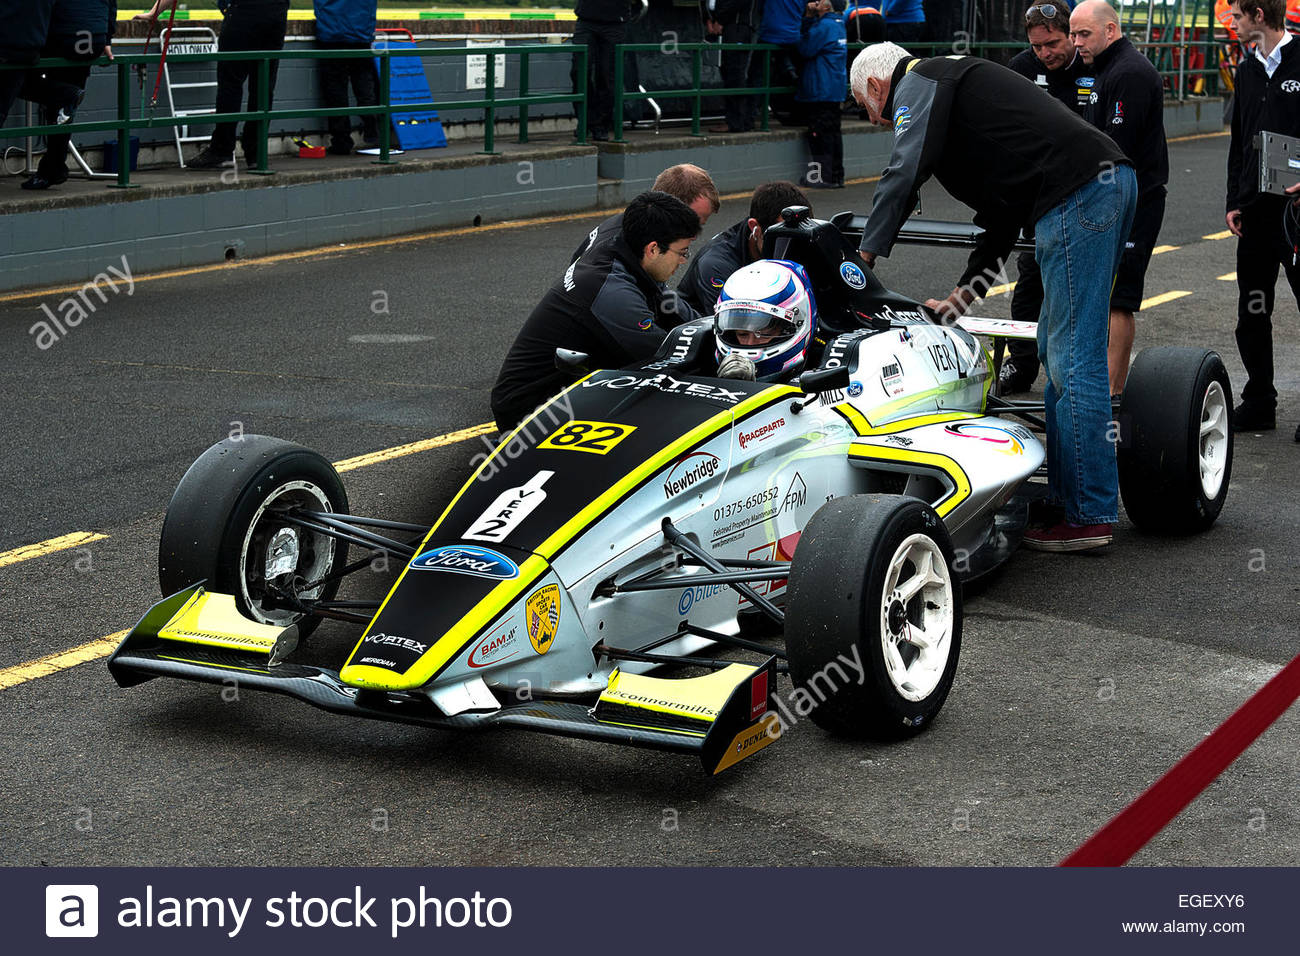 A Driver In An M S A Formula Ford Car In The Pit Lane Getting Ready